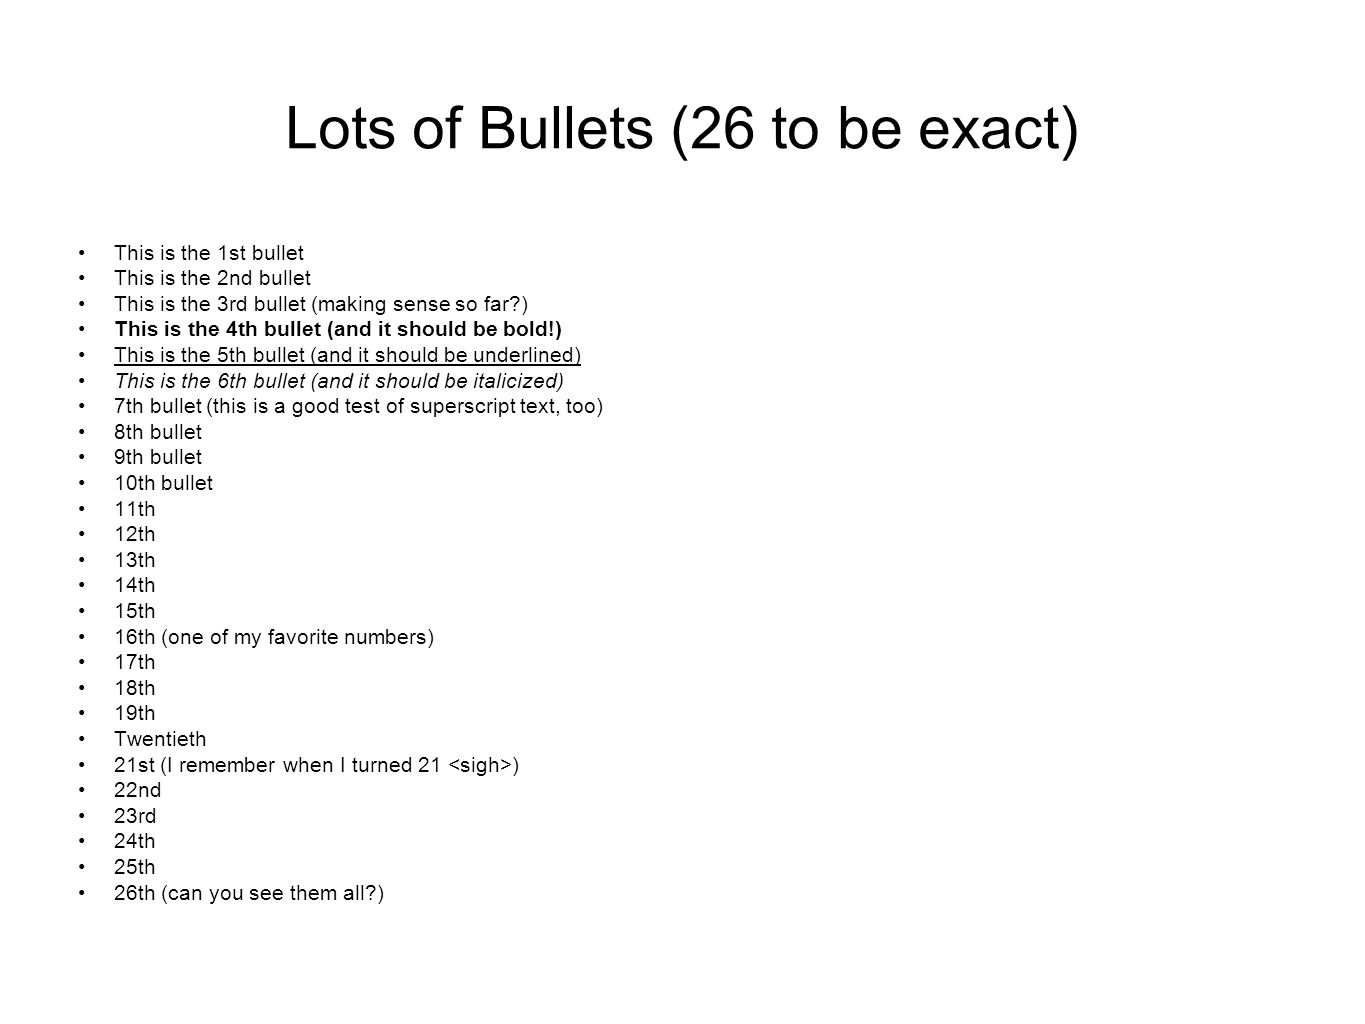 Lots of Bullets (26 to be exact) This is the 1st bullet This is the 2nd bullet This is the 3rd bullet (making sense so far ) This is the 4th bullet (and it should be bold!) This is the 5th bullet (and it should be underlined) This is the 6th bullet (and it should be italicized) 7th bullet (this is a good test of superscript text, too) 8th bullet 9th bullet 10th bullet 11th 12th 13th 14th 15th 16th (one of my favorite numbers) 17th 18th 19th Twentieth 21st (I remember when I turned 21 ) 22nd 23rd 24th 25th 26th (can you see them all )